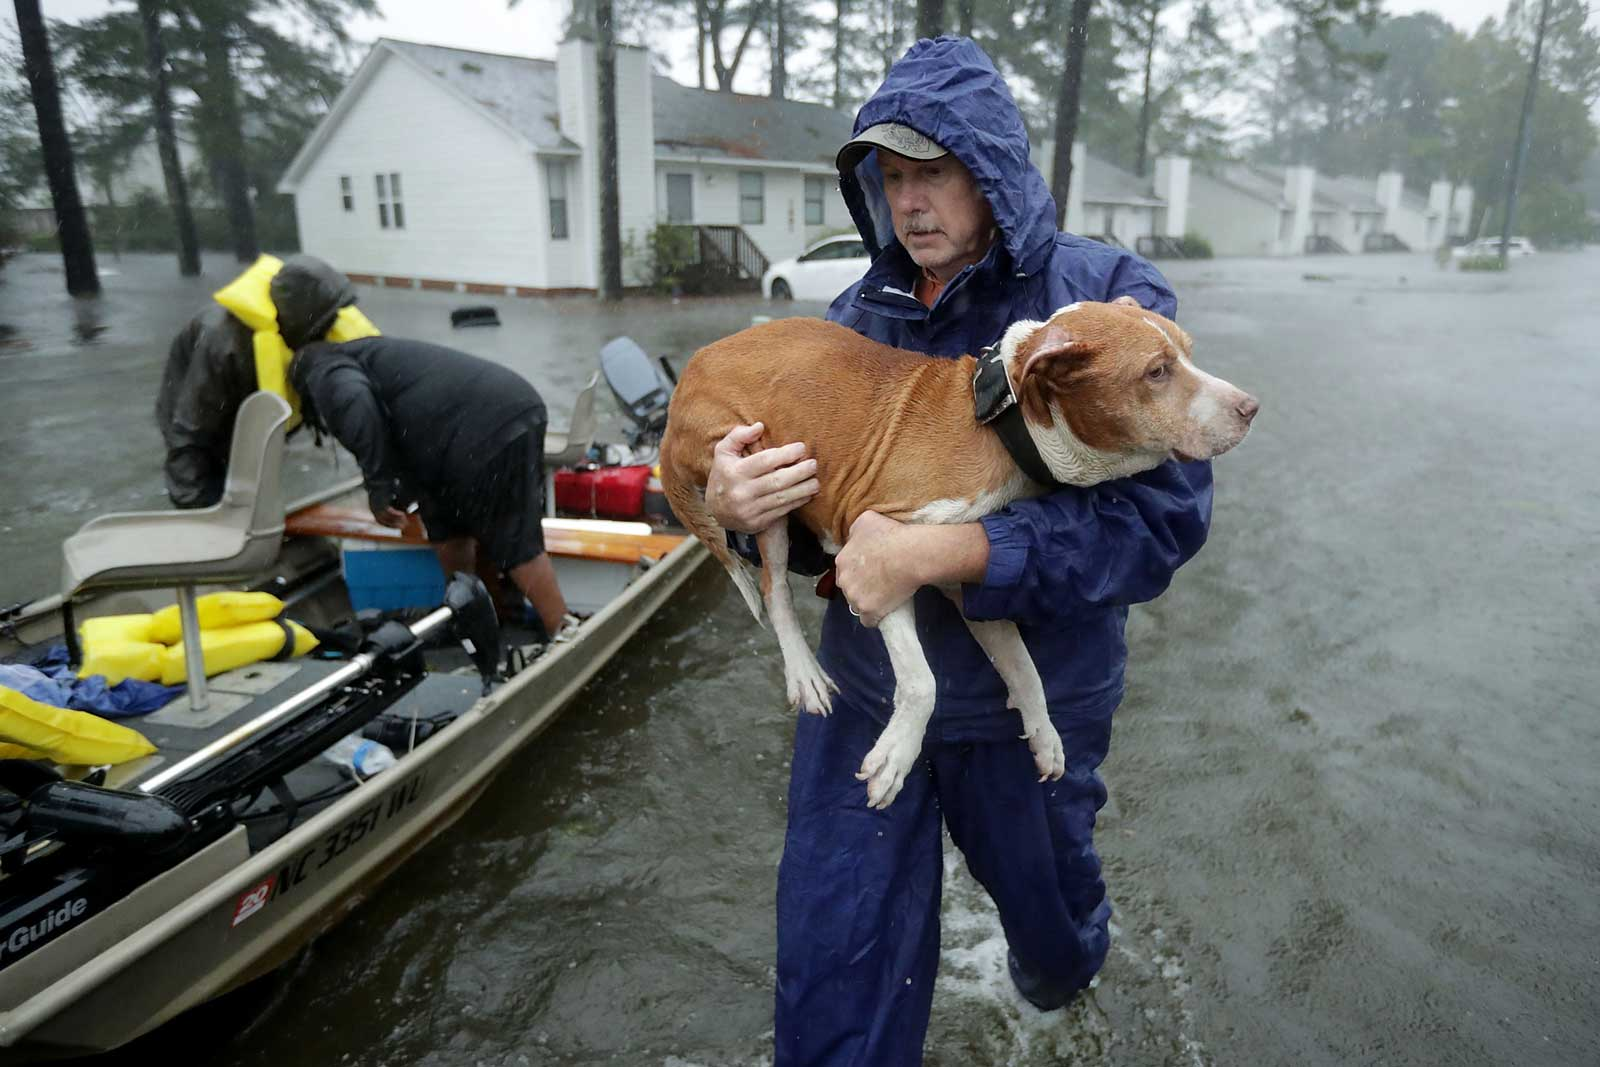 Here's How to Help Hurricane Florence Victims